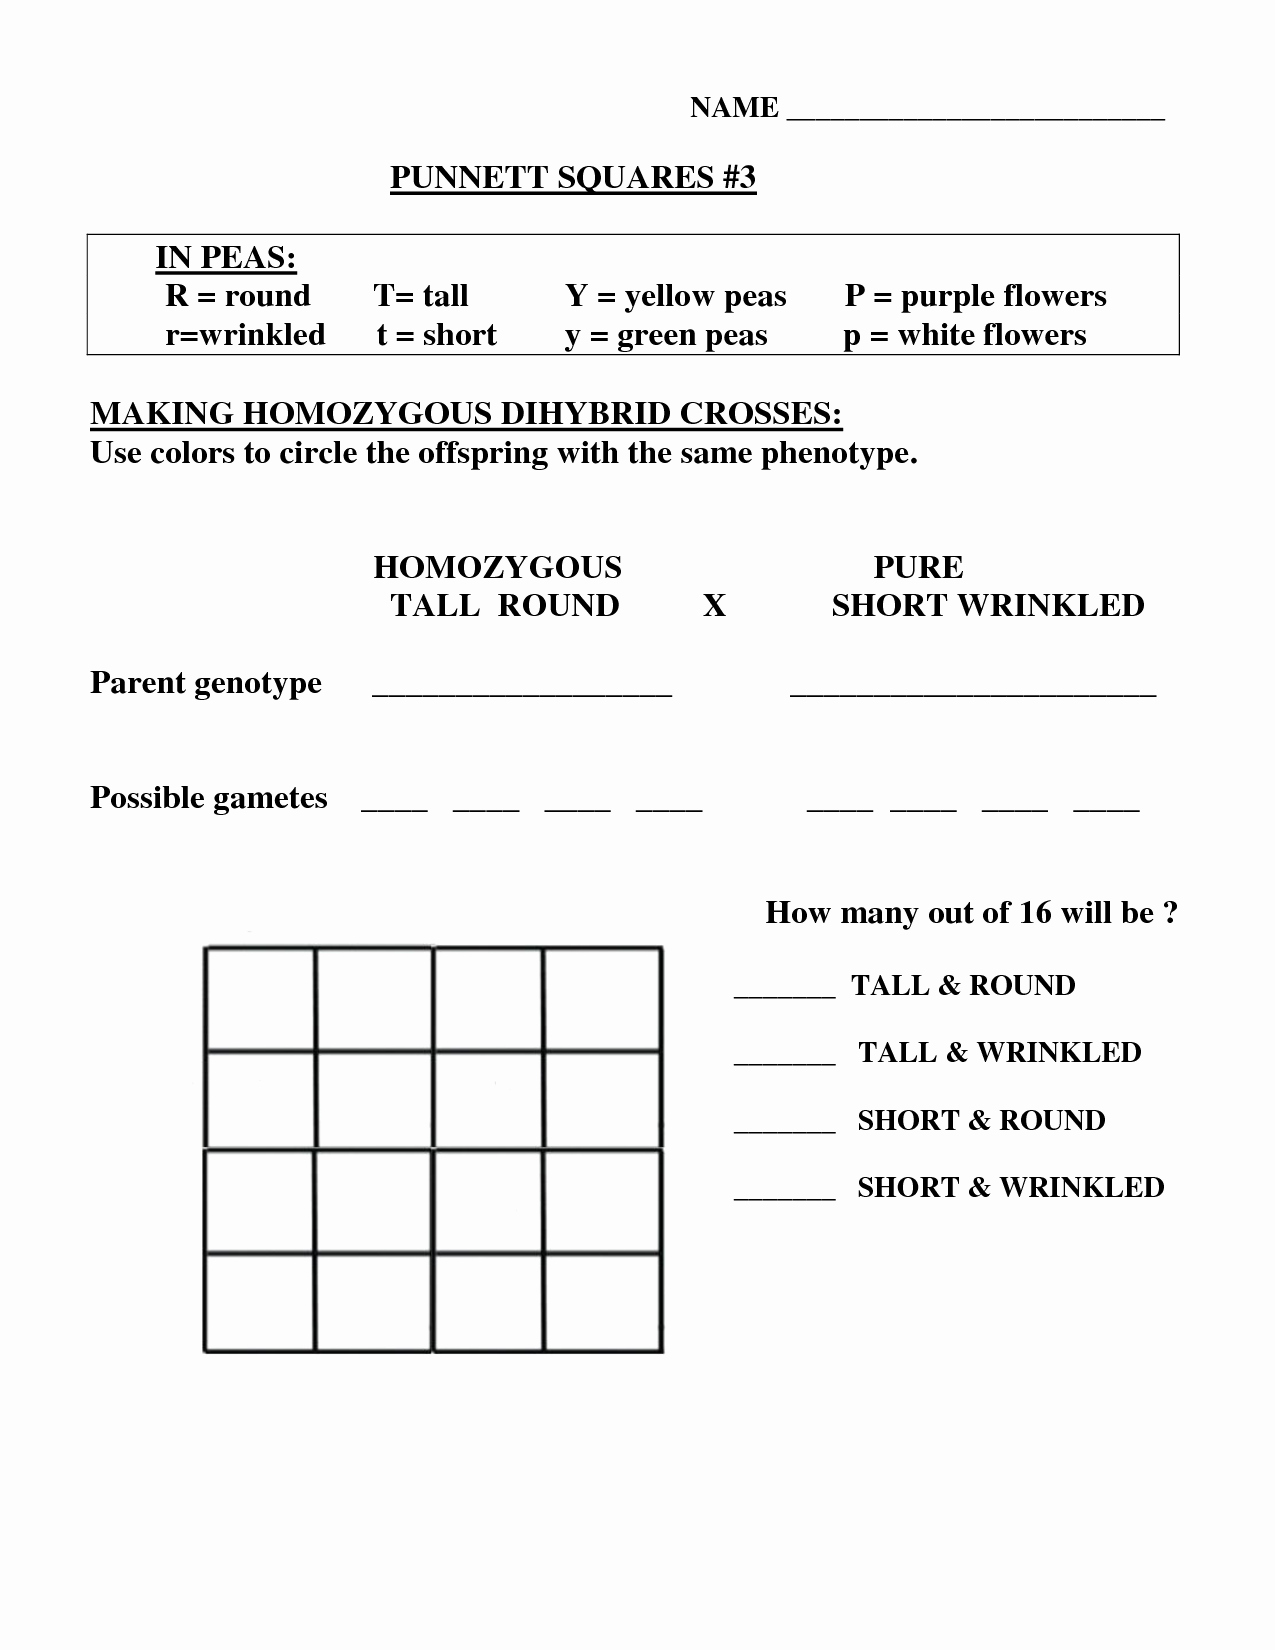 Dihybrid Cross Worksheet Answers Awesome 15 Best Of Dihybrid Cross Worksheet Answers